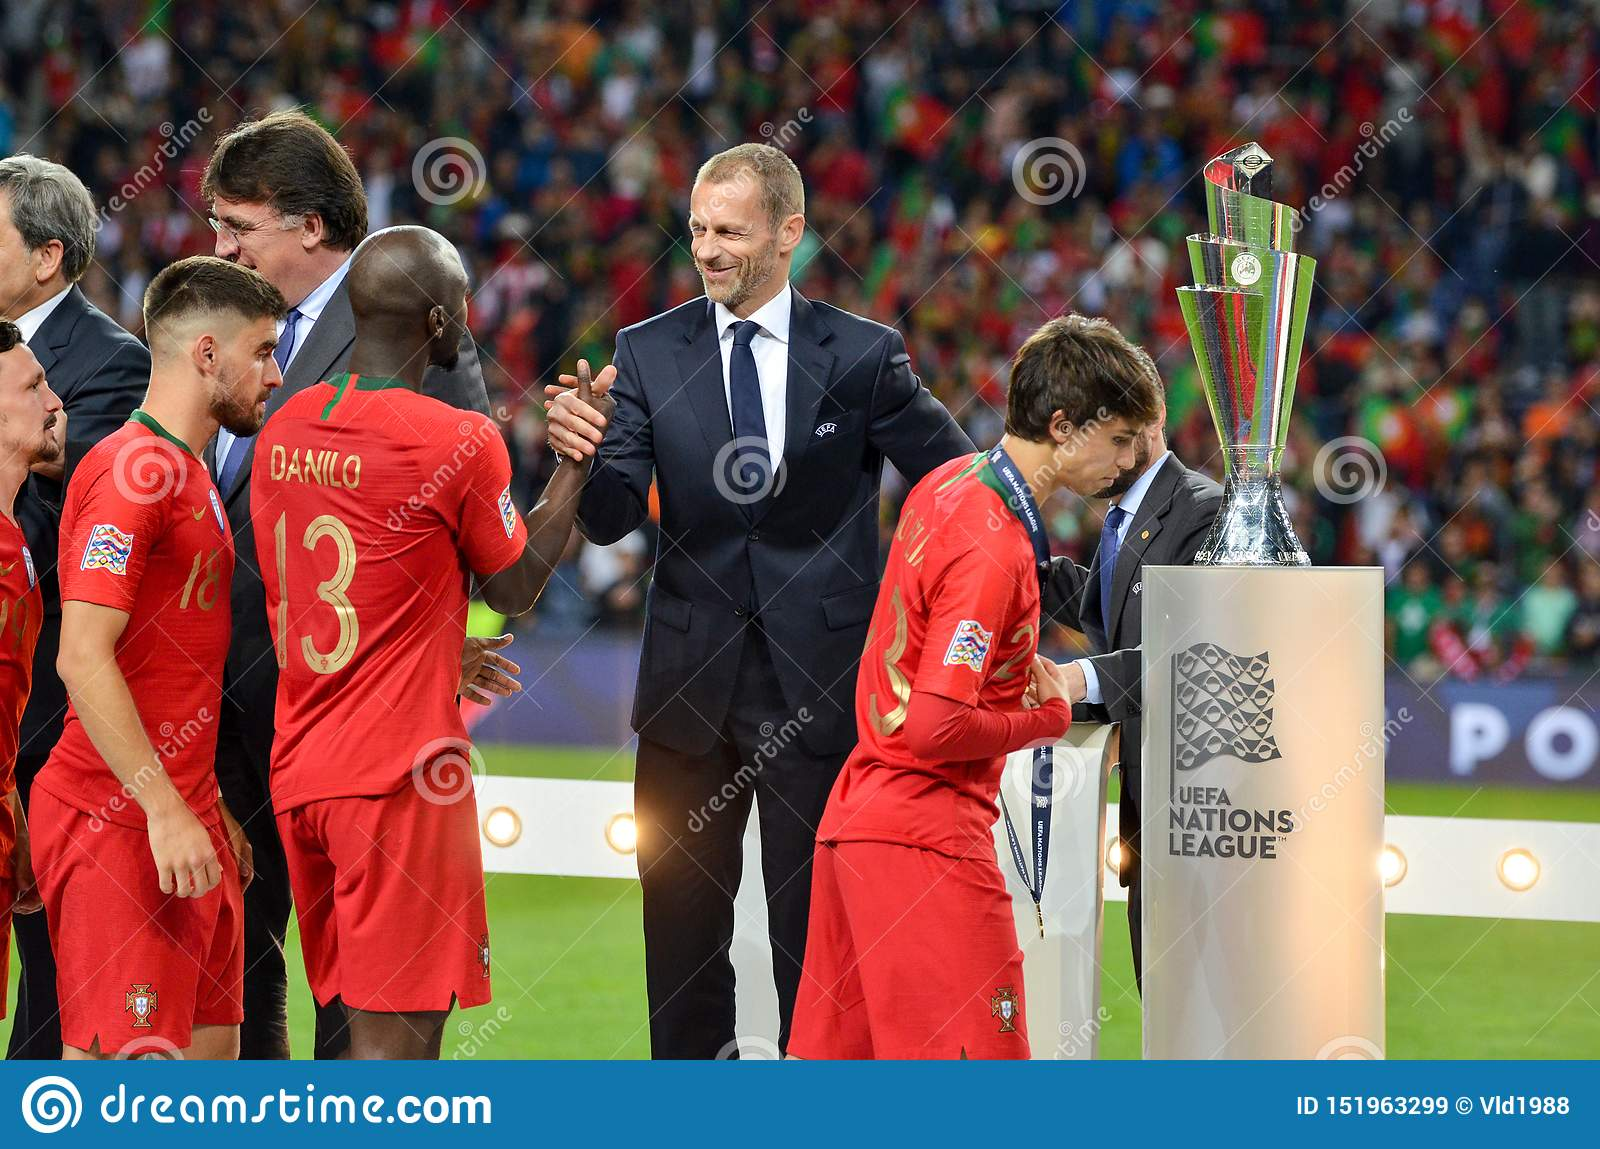 Porto Portuglal June 09 2019 Danilo Pereira National Team Receive Gold Medals During The Uefa Nations League Finals Match Editorial Stock Image Image Of Green Competition 151963299